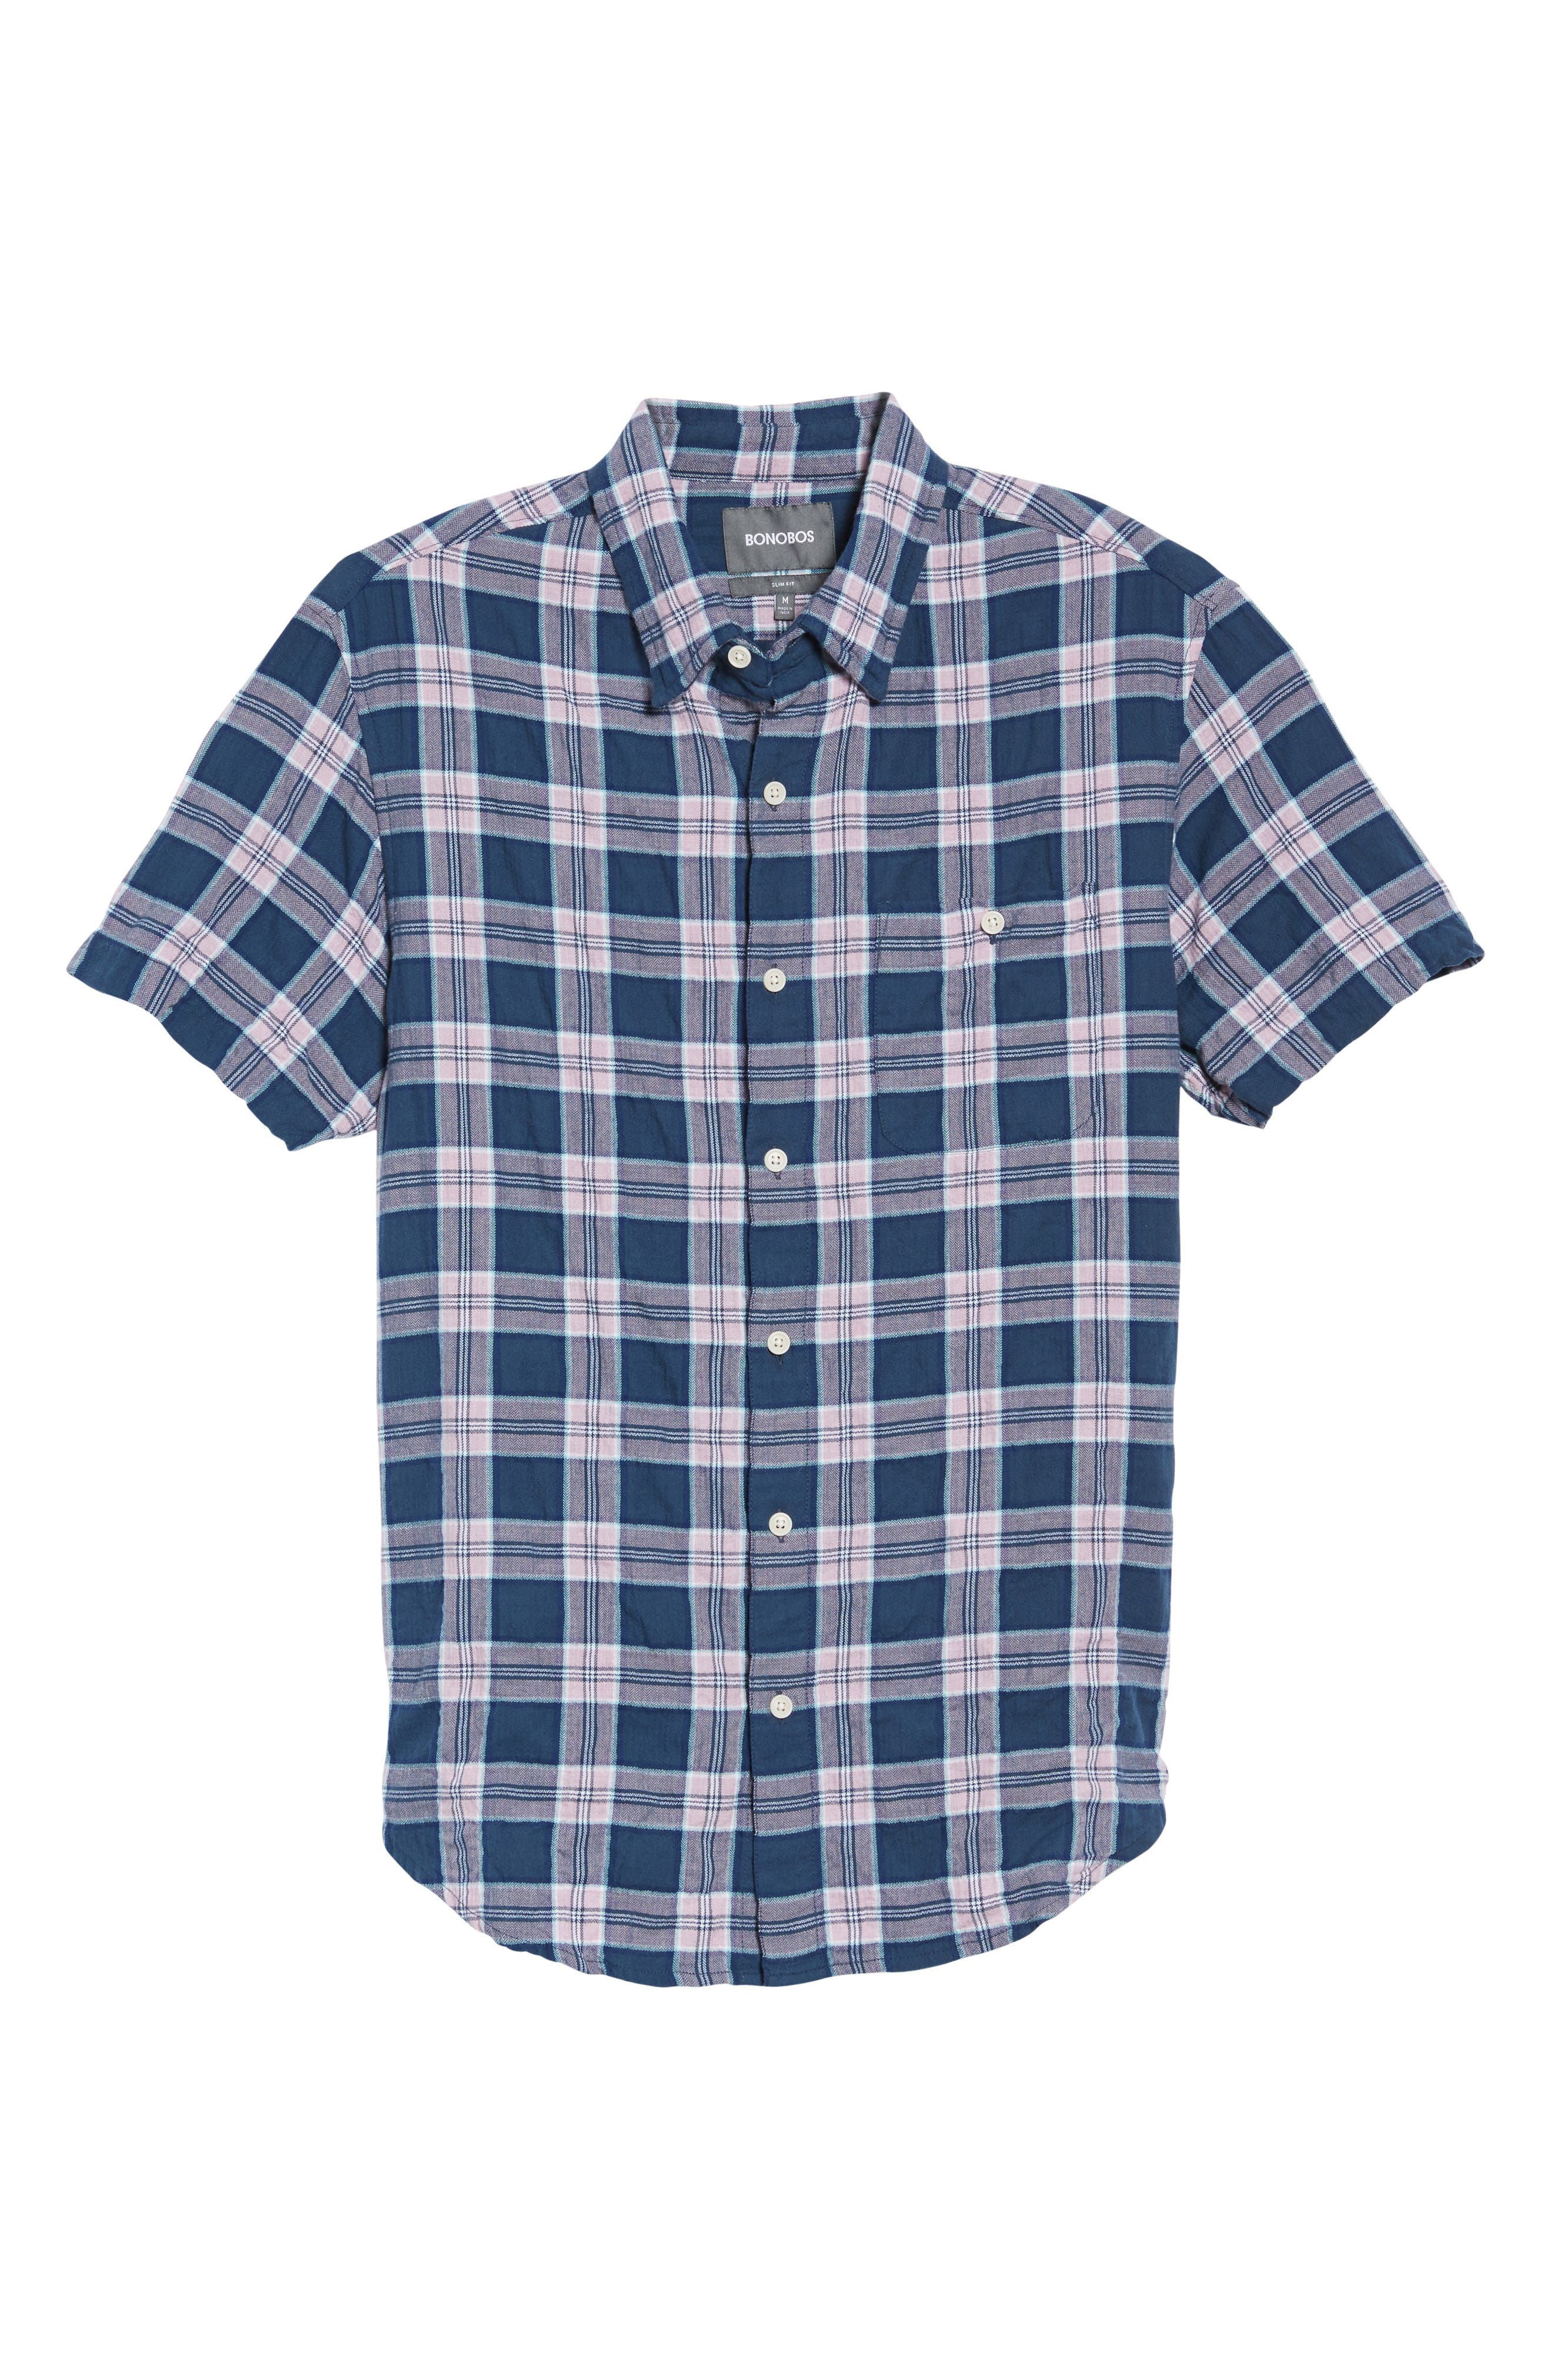 Riviera Slim Fit Plaid Woven Shirt,                             Alternate thumbnail 6, color,                             Crinkle Blue Pine Plaid